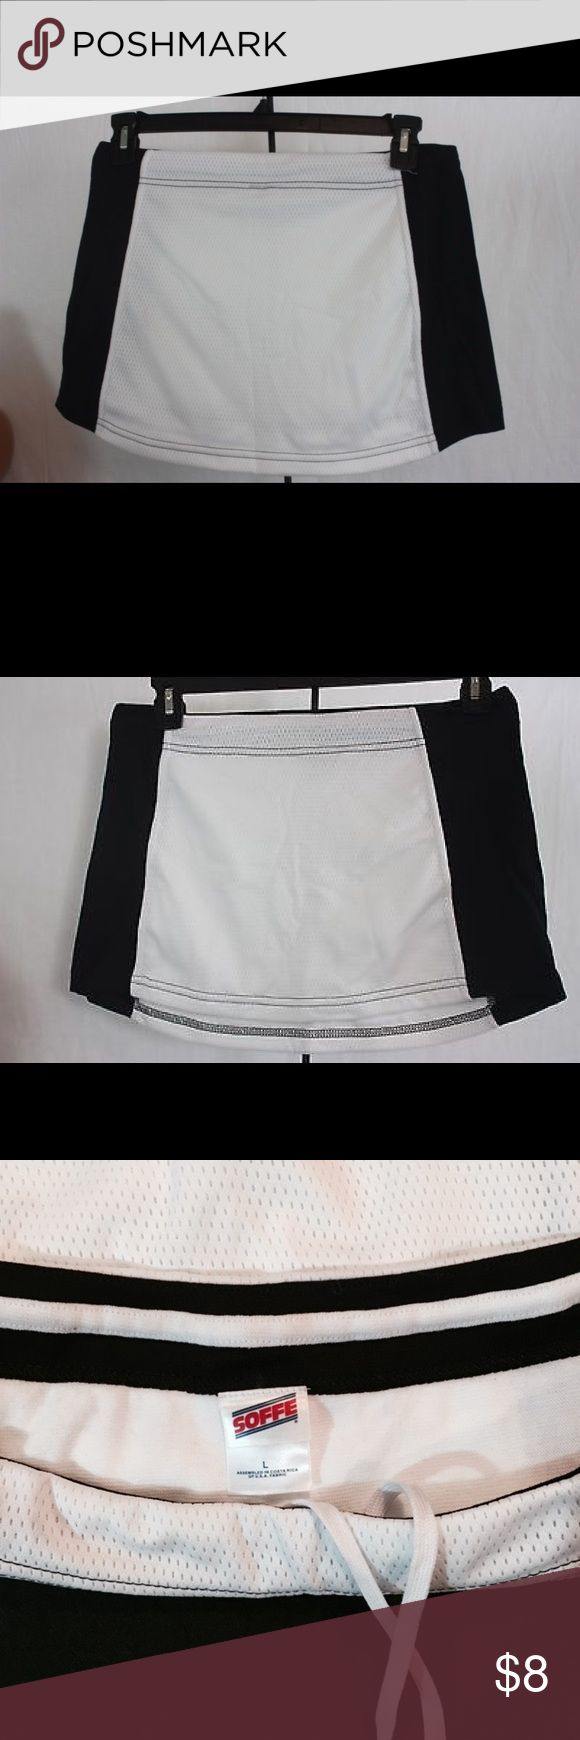 Soffee Athletic Skirt Size Large Black and white Soffee Tennis skirt Size large never worn Skirts